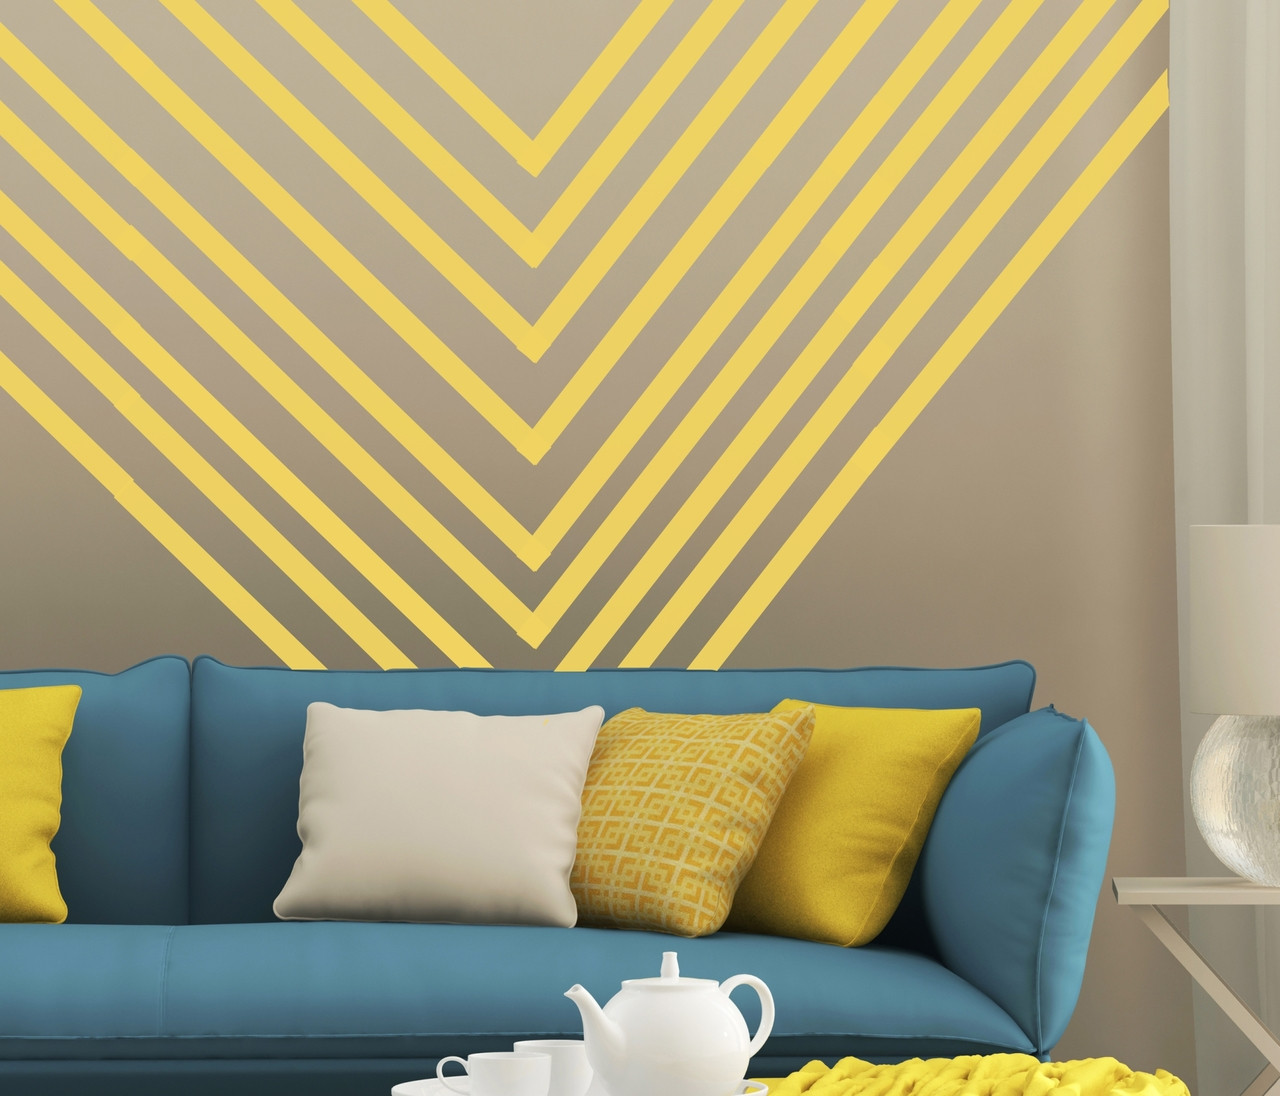 Wall Decal Stripes, Vinyl Stickers to Make a Room Border or Stripes ...